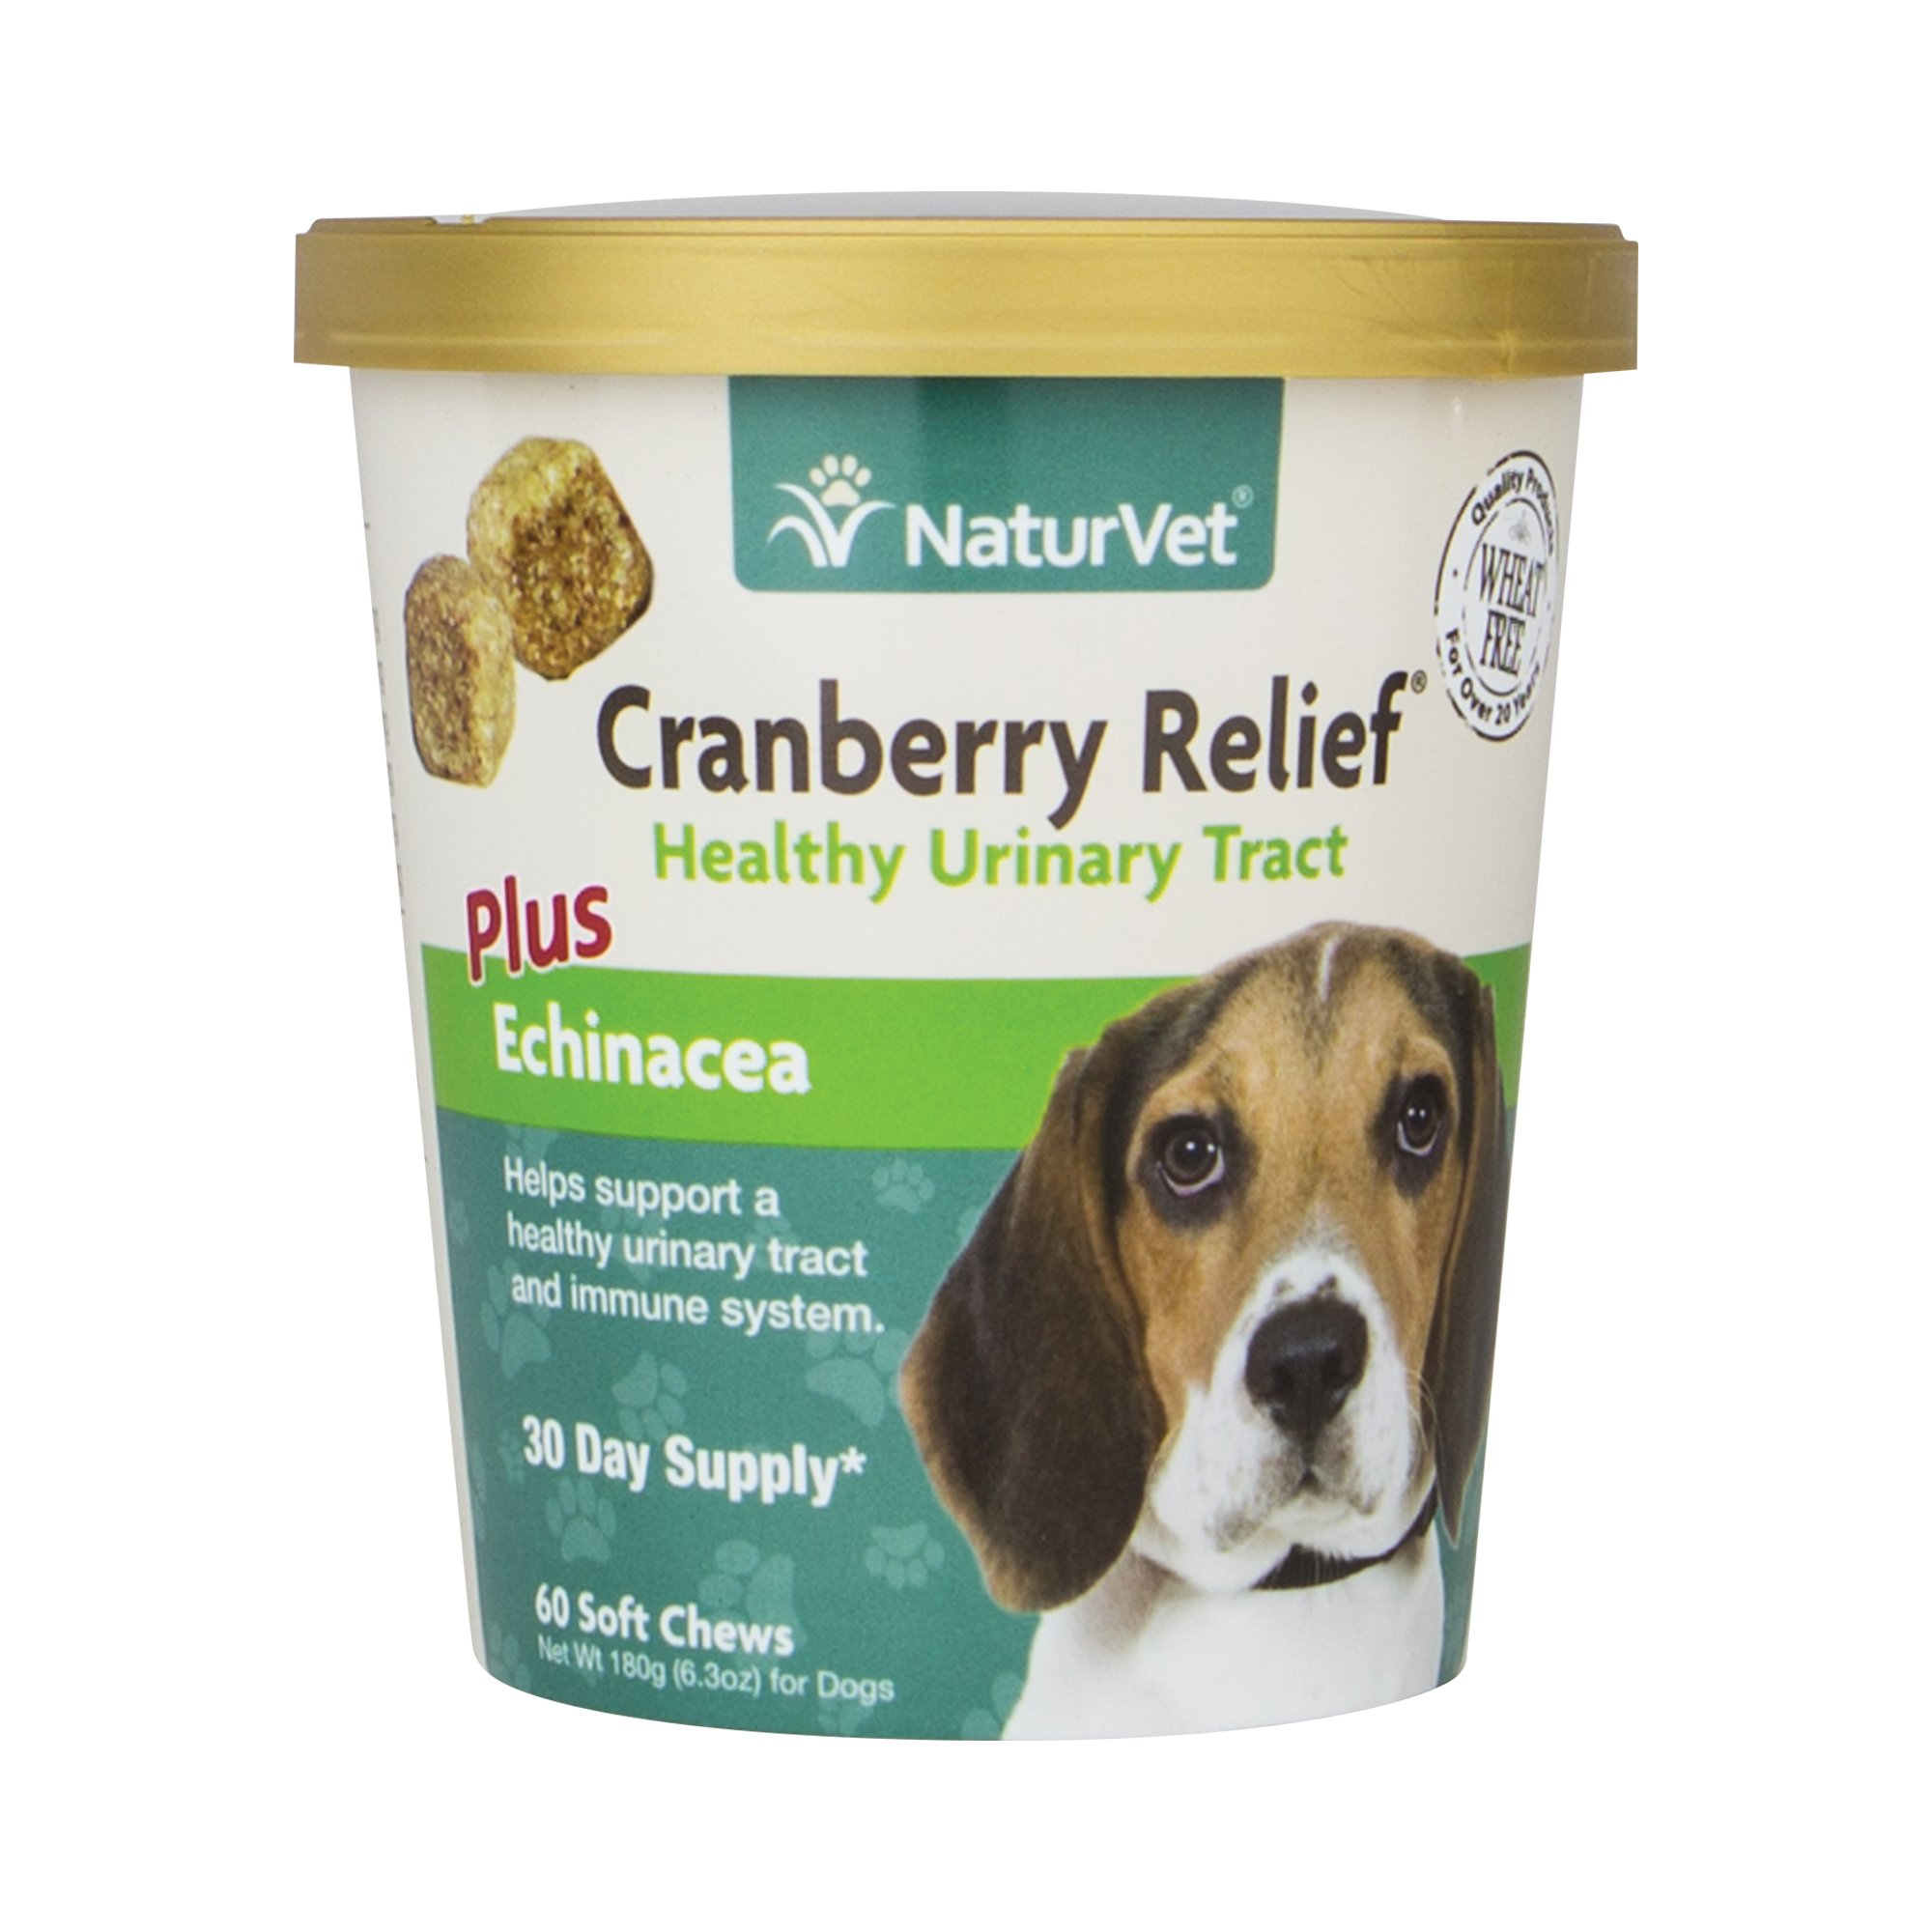 NaturVet Urinary Health Supplement Soft Chews for Dogs, Healthy Bladder & Urinary Tract Support with Cranberry & Echinacea, Made